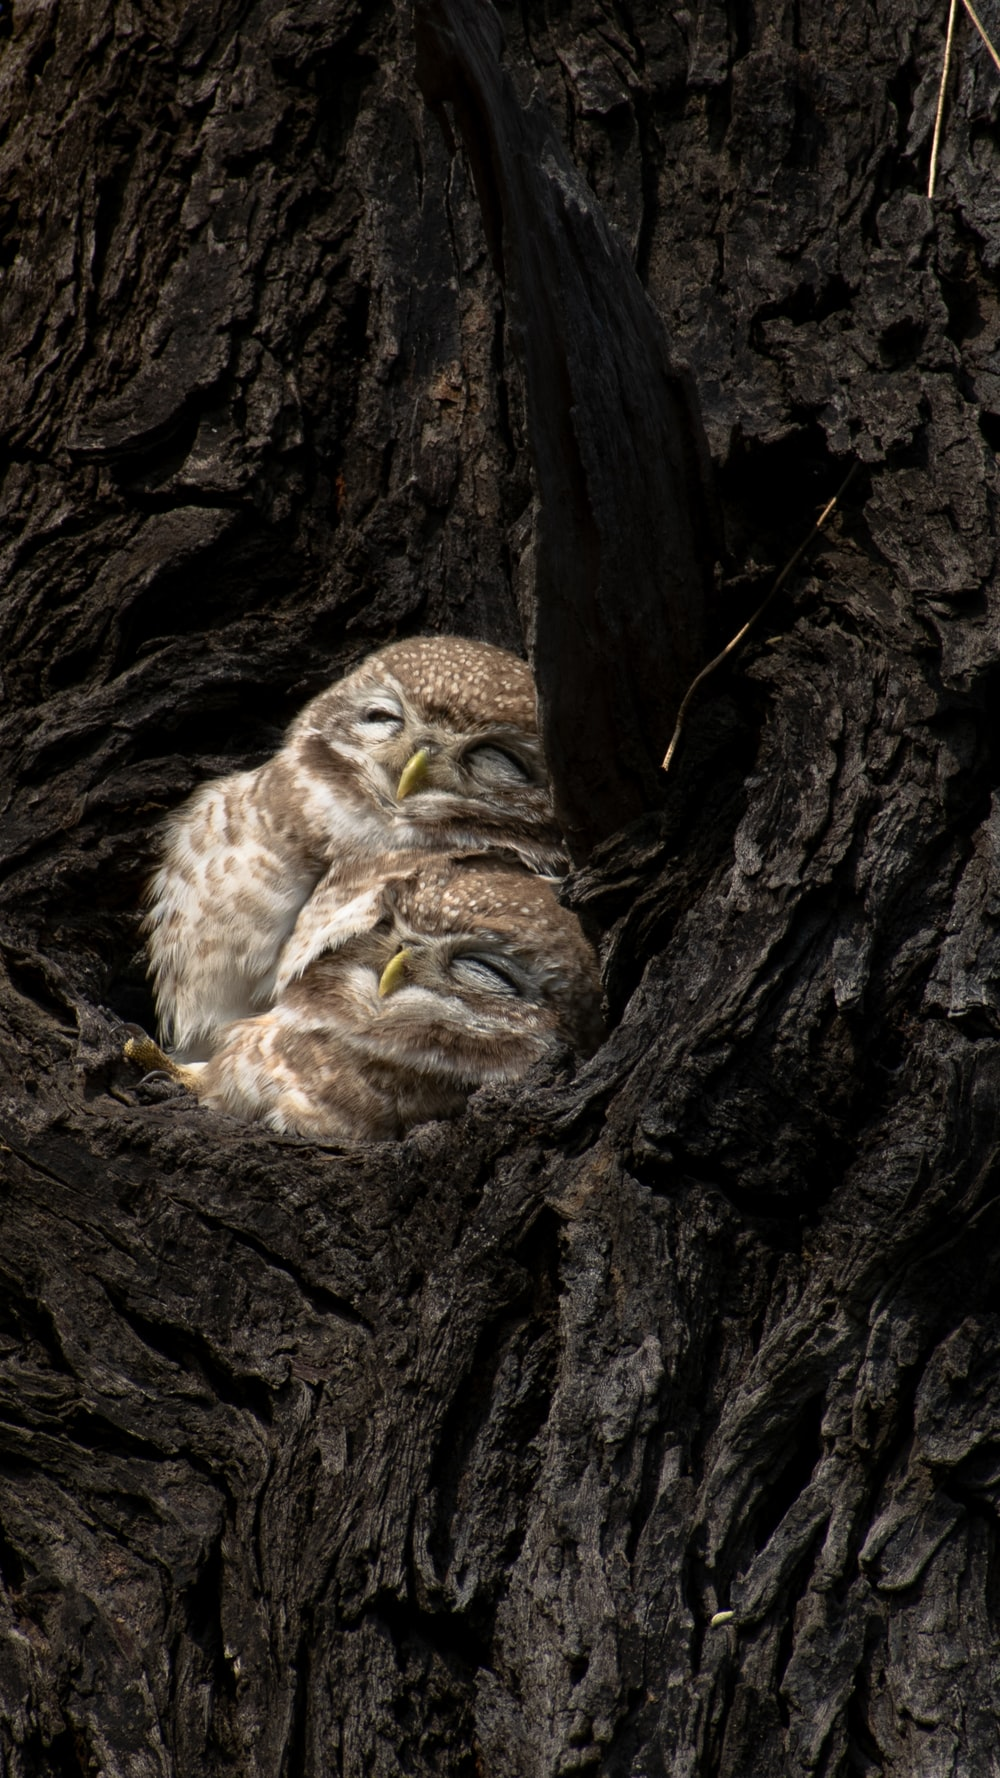 brown owlets in nest